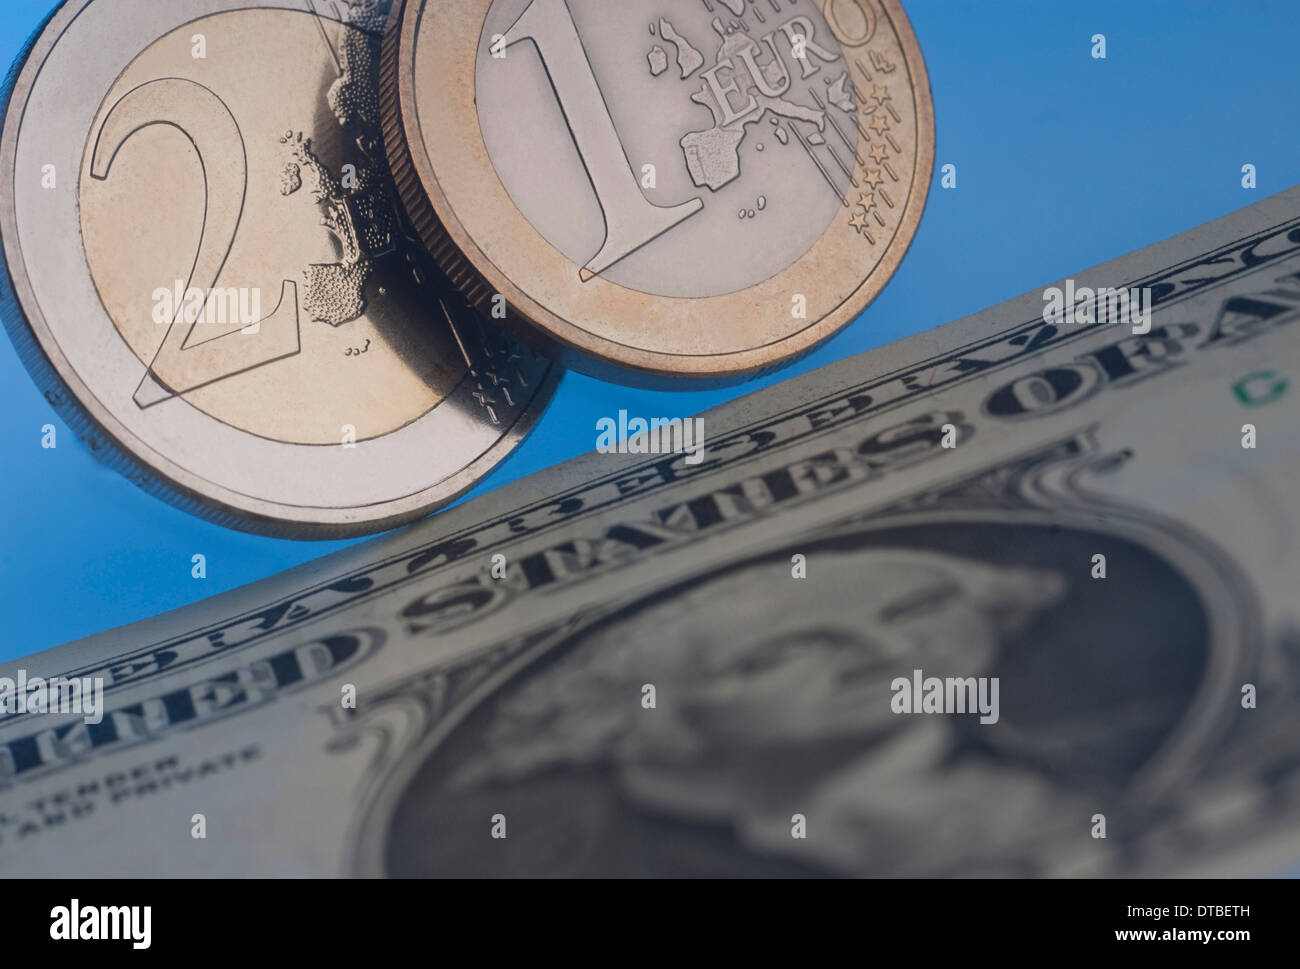 Euromuenzen and dollar bill Stock Photo